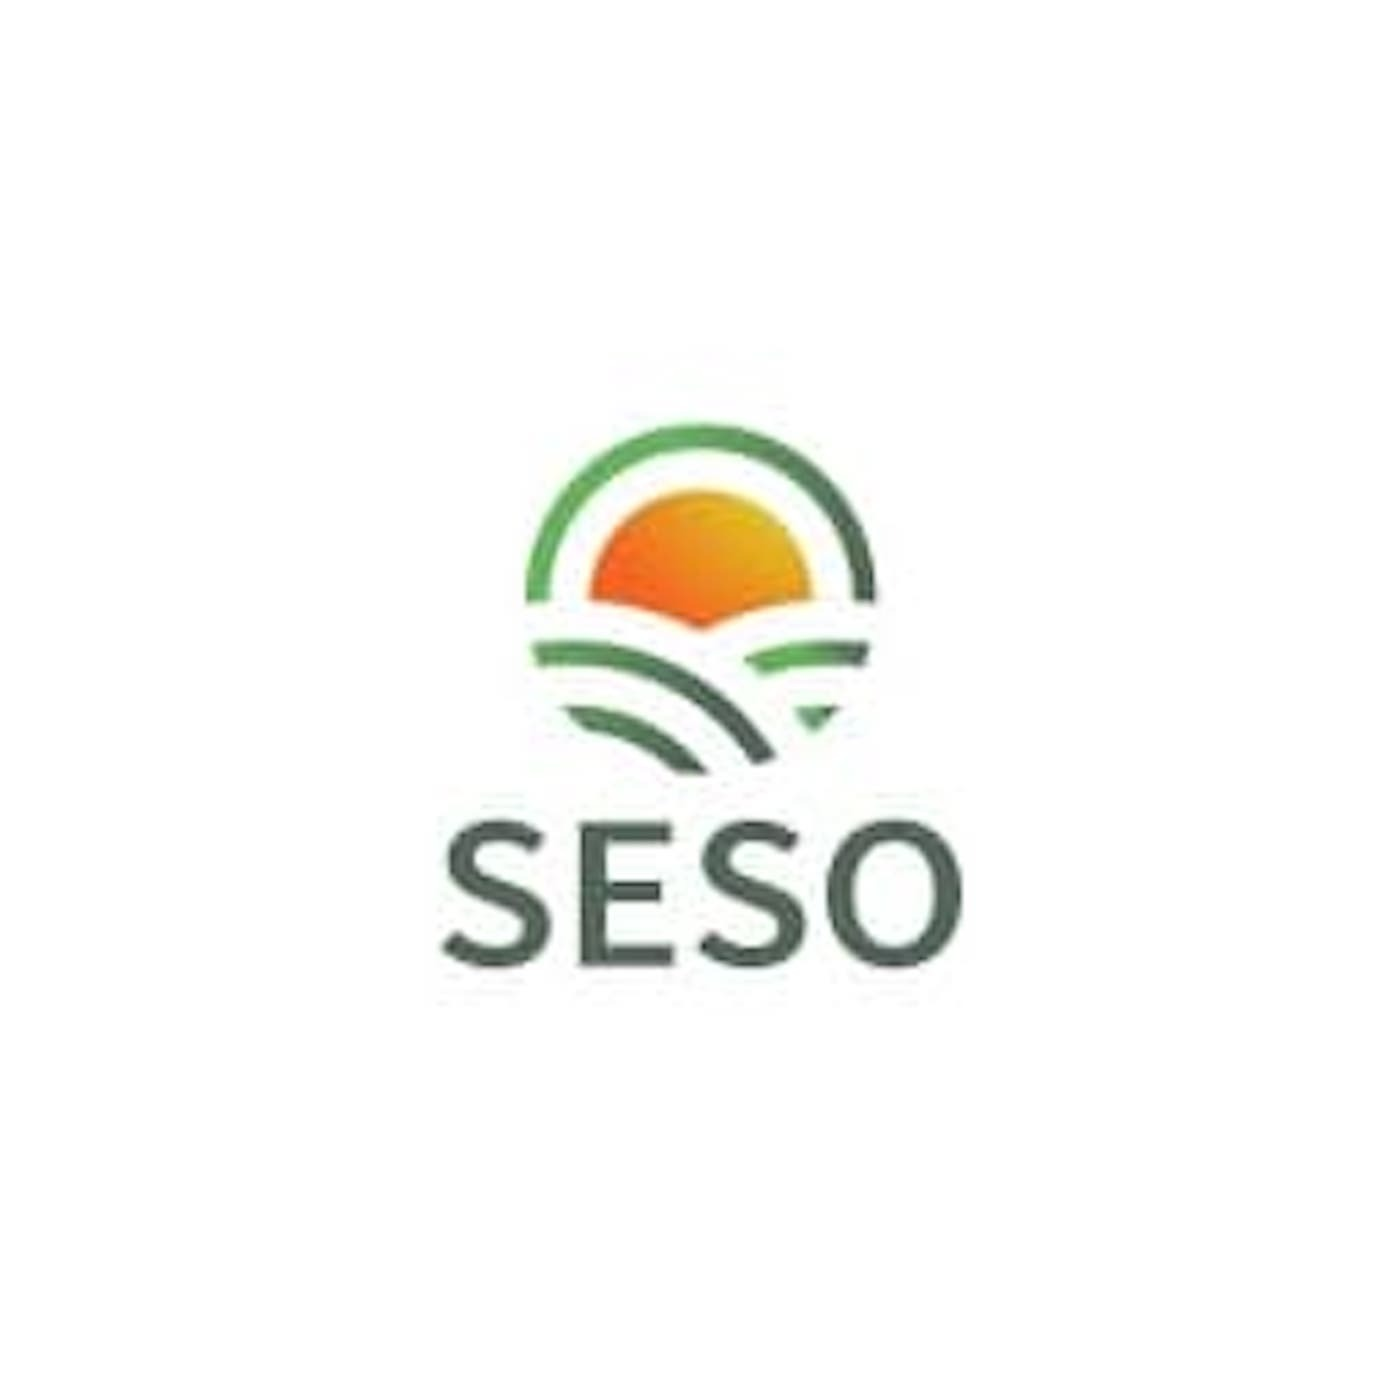 Jordan Taylor - Co-founder and Head of Product, SESO